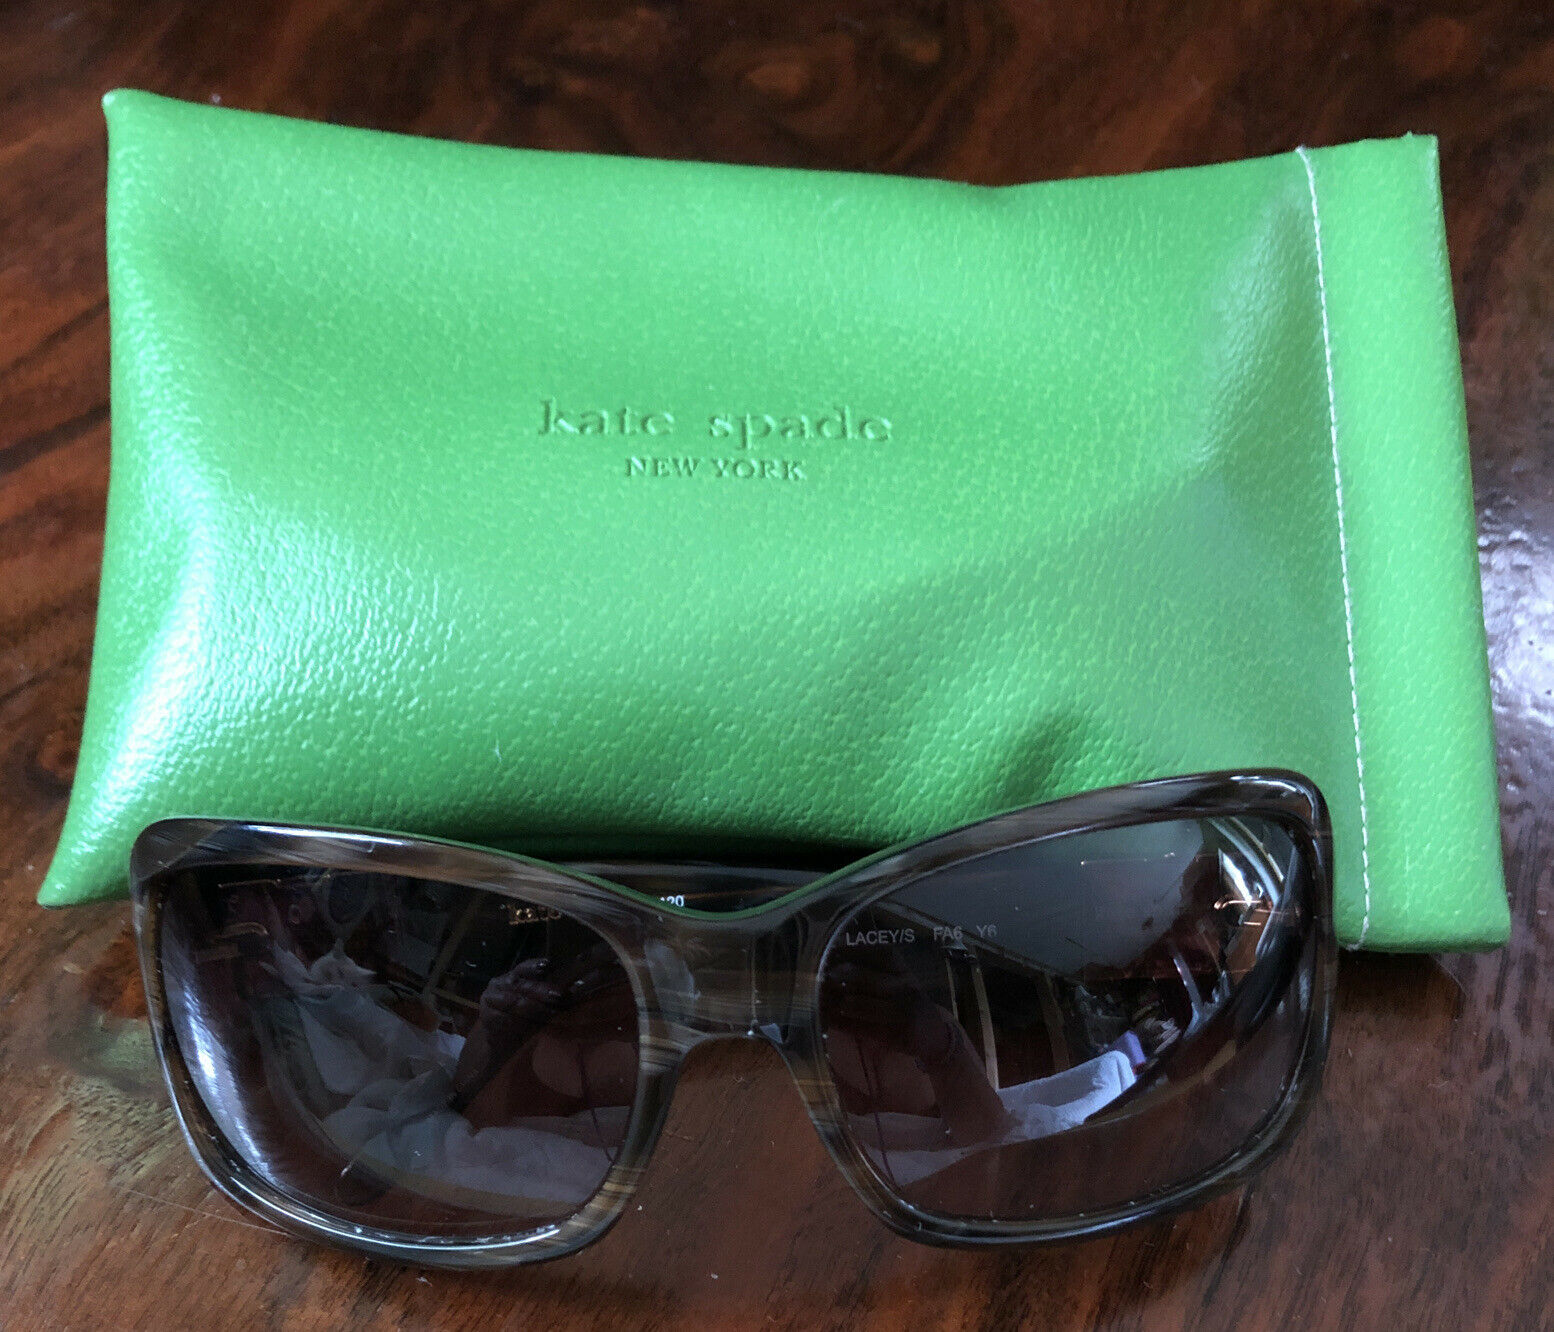 Kate Spade New York Sunglasses Tortoise Laceys 120DN8P Authentic Green Gold Lens